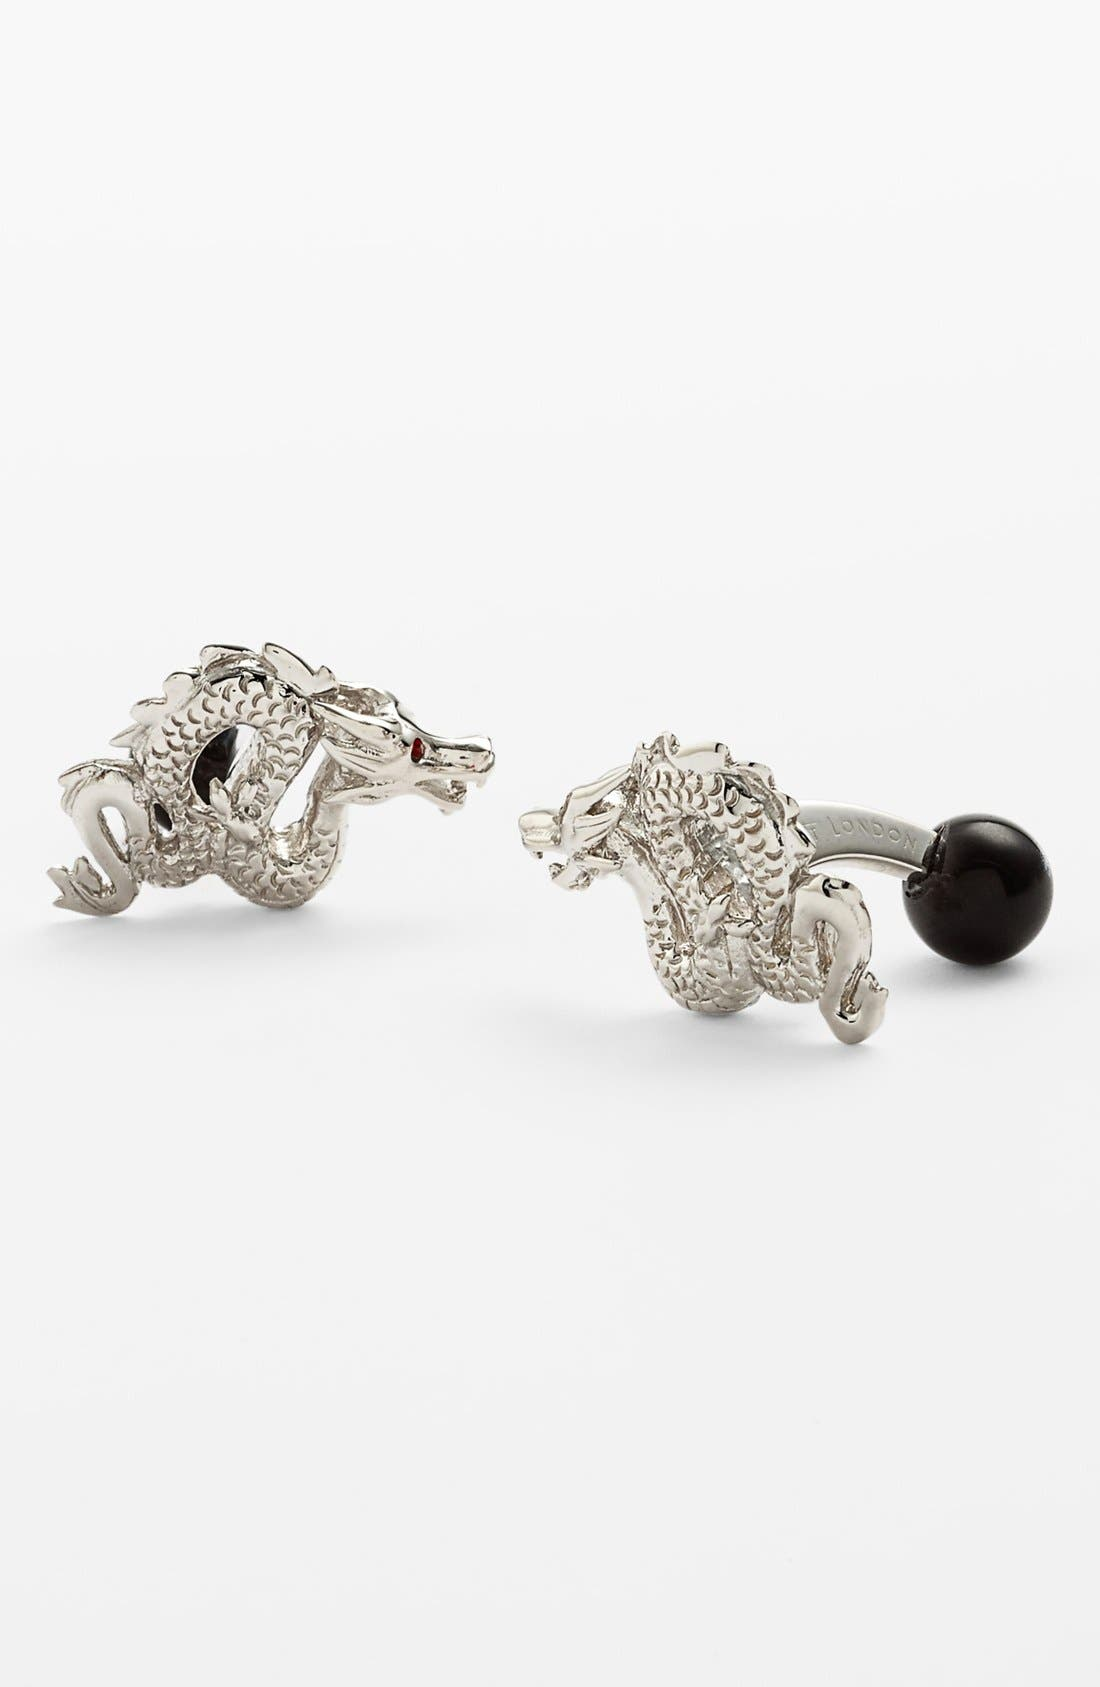 Alternate Image 1 Selected - Tateossian 'Dragon' Cuff Links